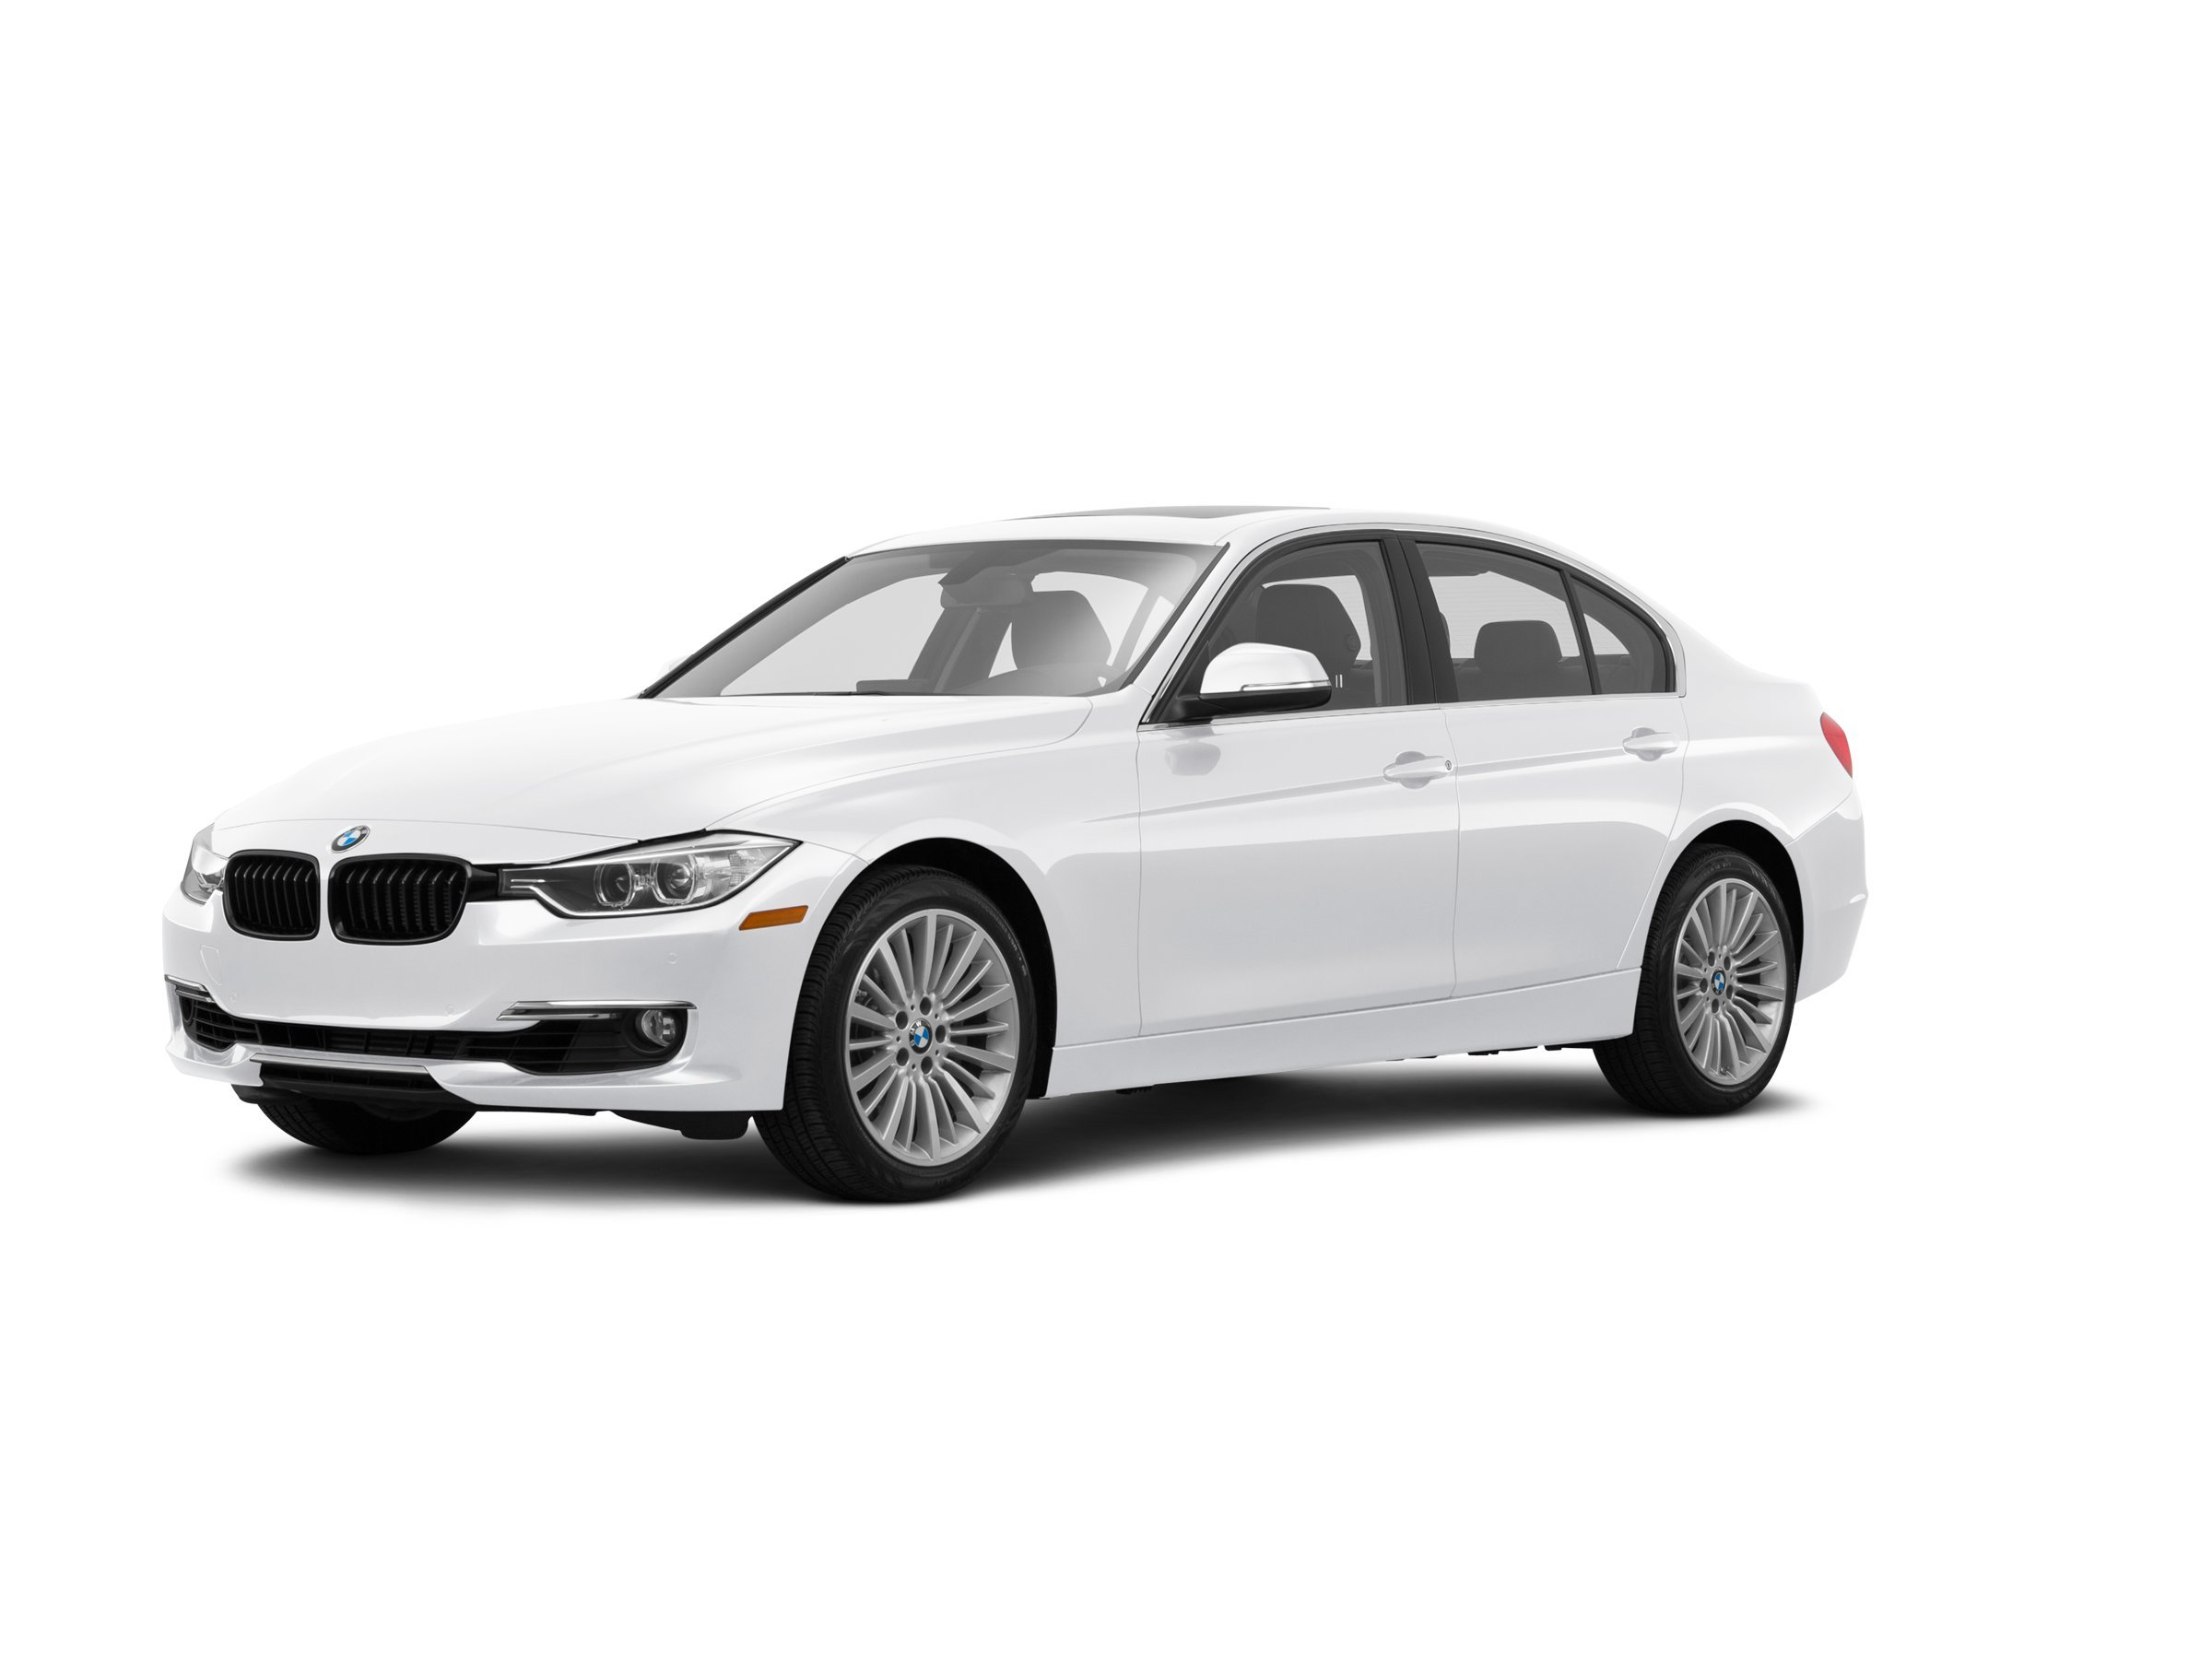 Amazon 2015 BMW 335i xDrive Reviews and Specs Vehicles